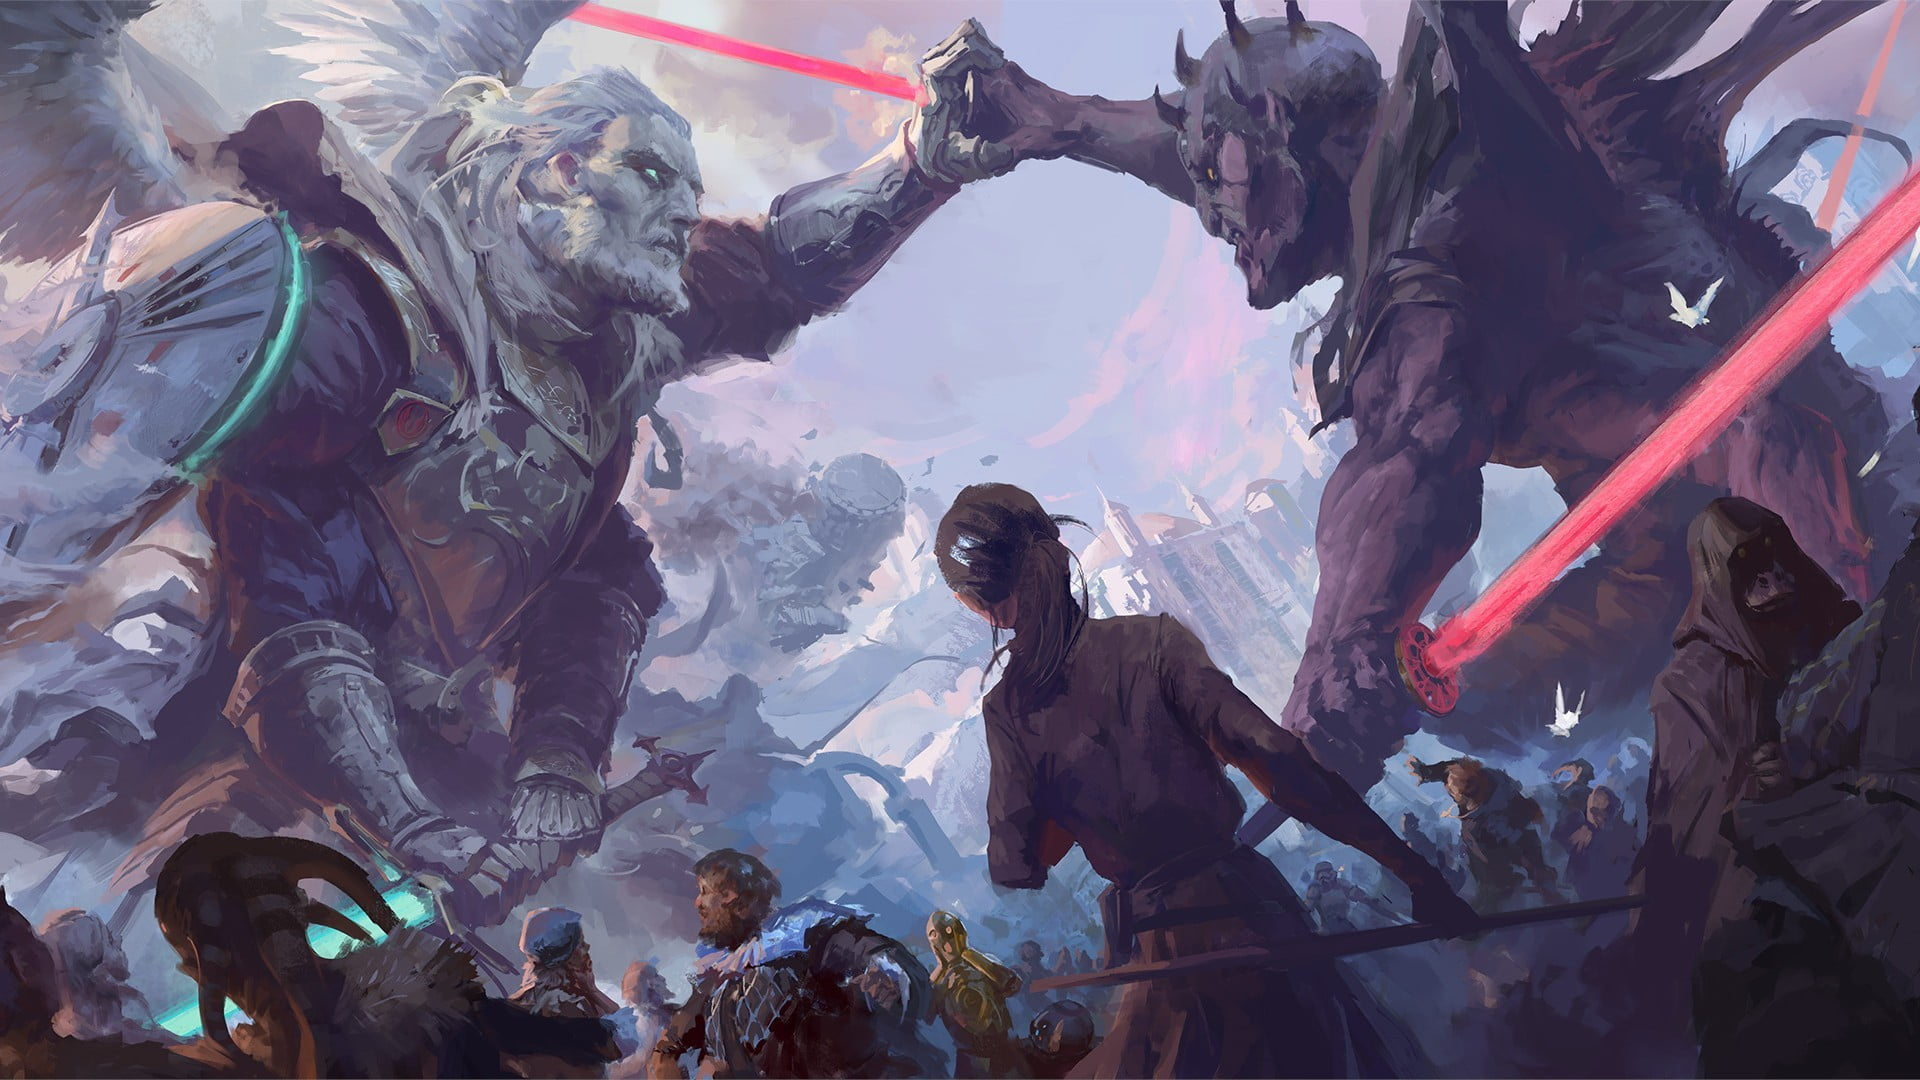 Jedi Vs Sith Art 1920x1080 Wallpaper Teahub Io